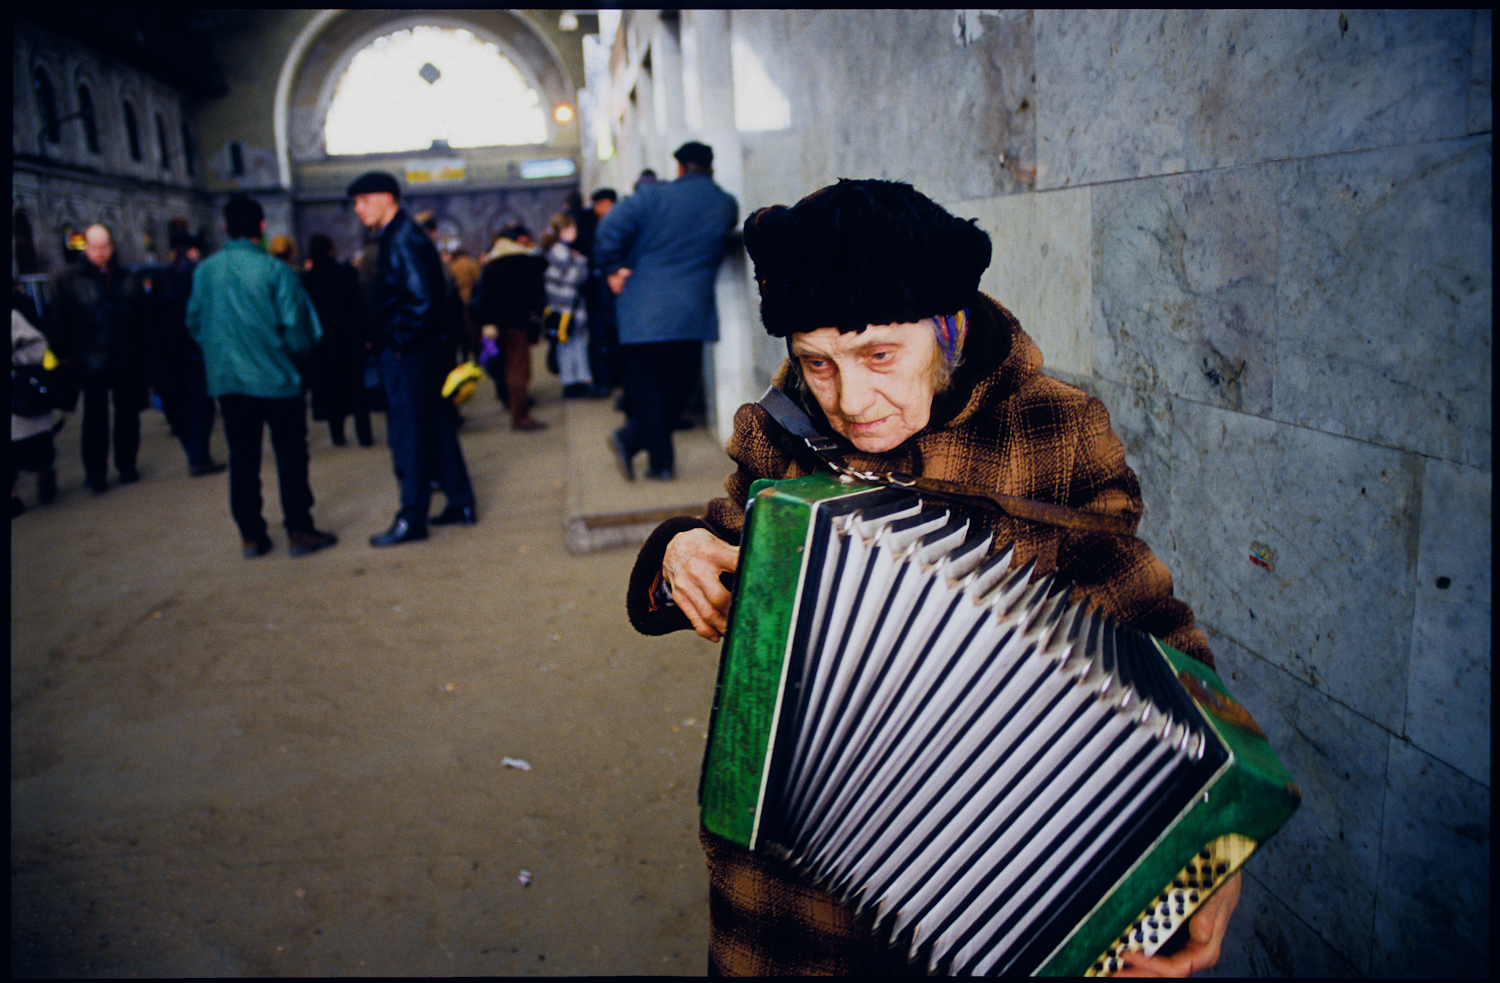 St. Petersburg, Russia. Anna Kuznetsova playing her accordian at the  Baltisky train station to augment her monthly pension of 800 rubles (23  dollars) per month.